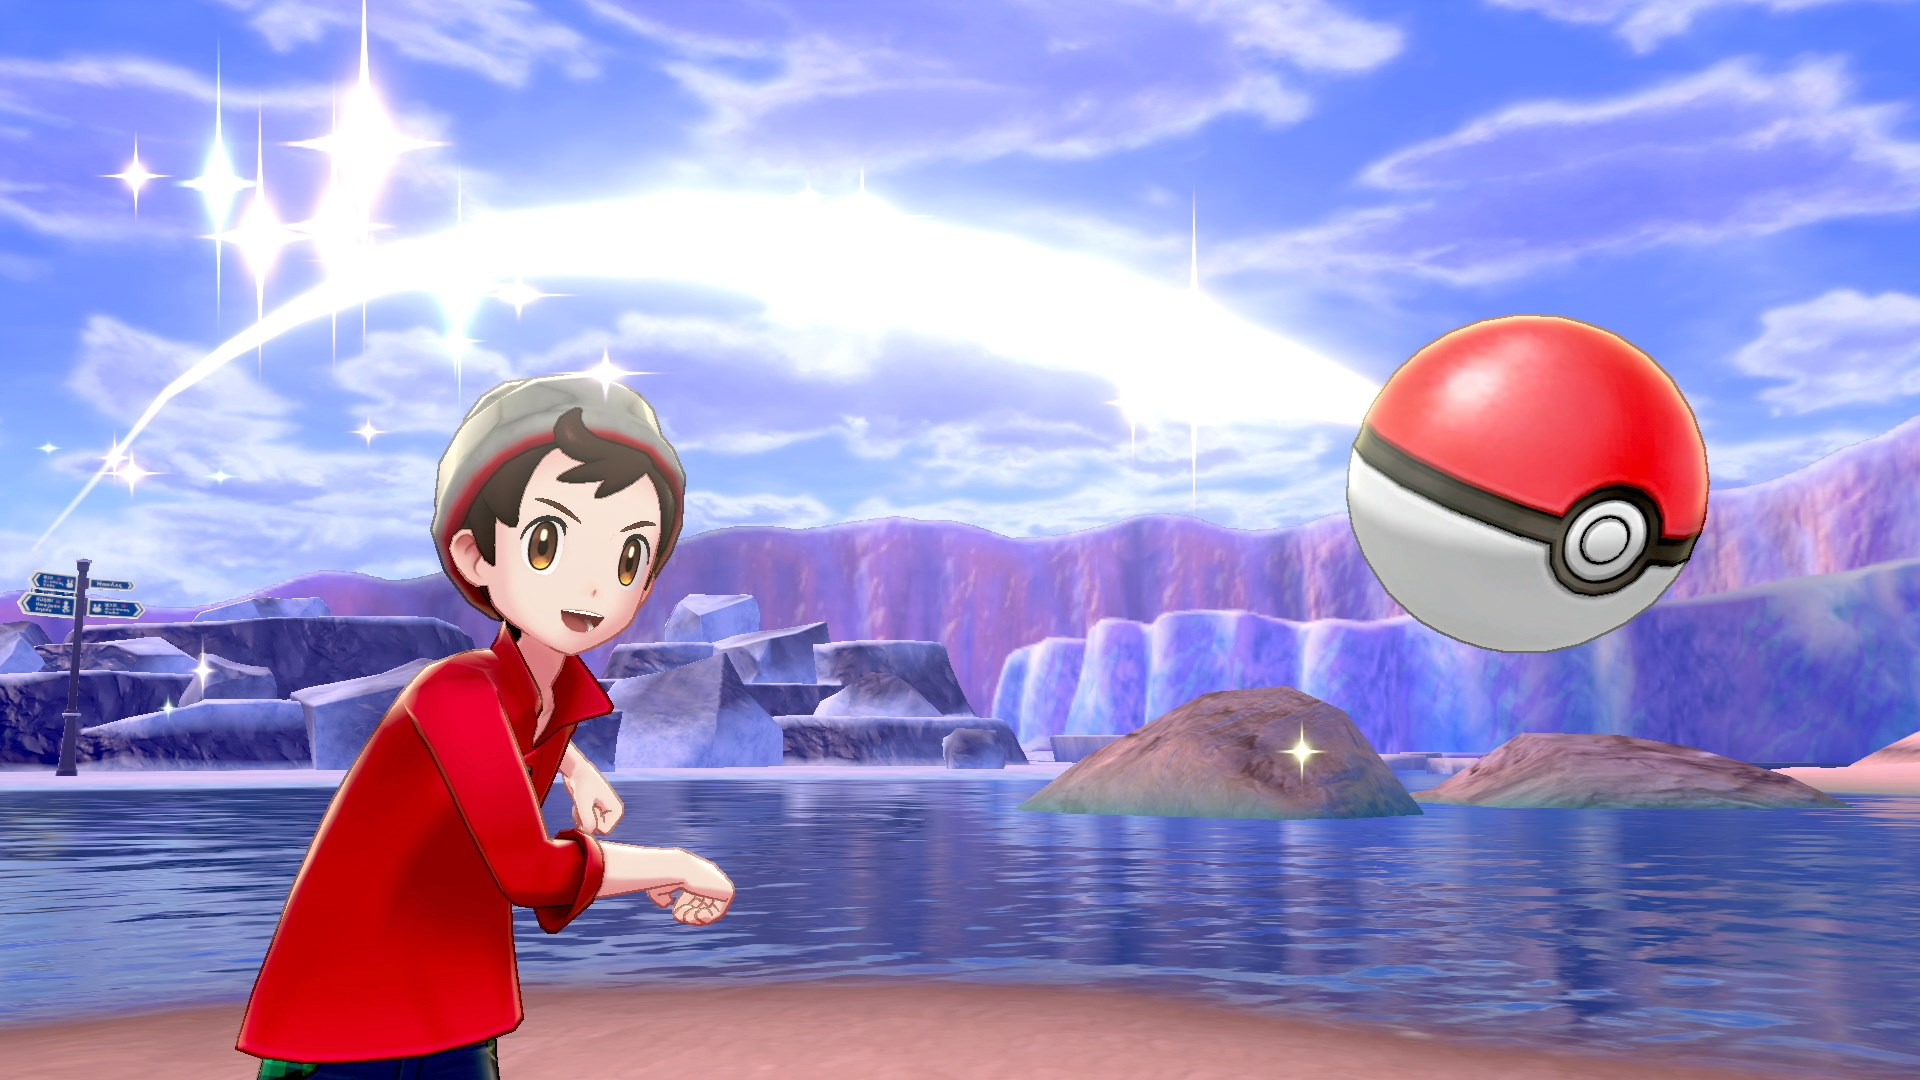 Pokémon Sword and Shield: first impressions